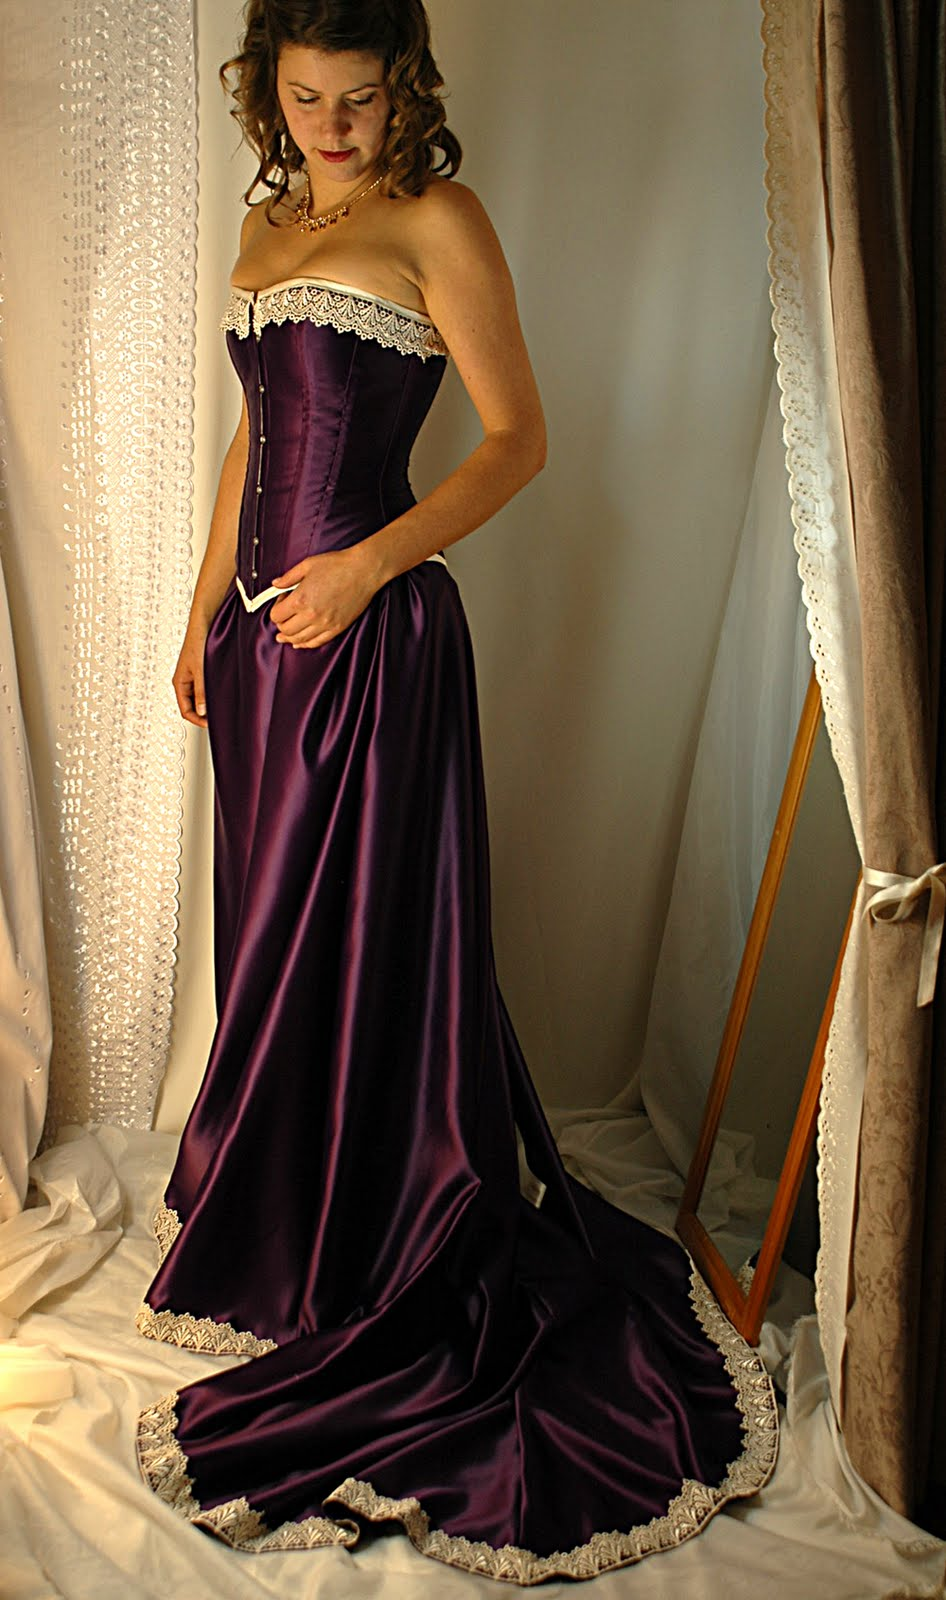 Cadbury purple and antiqued ivory corset gown bound by for How to lace a corset wedding dress